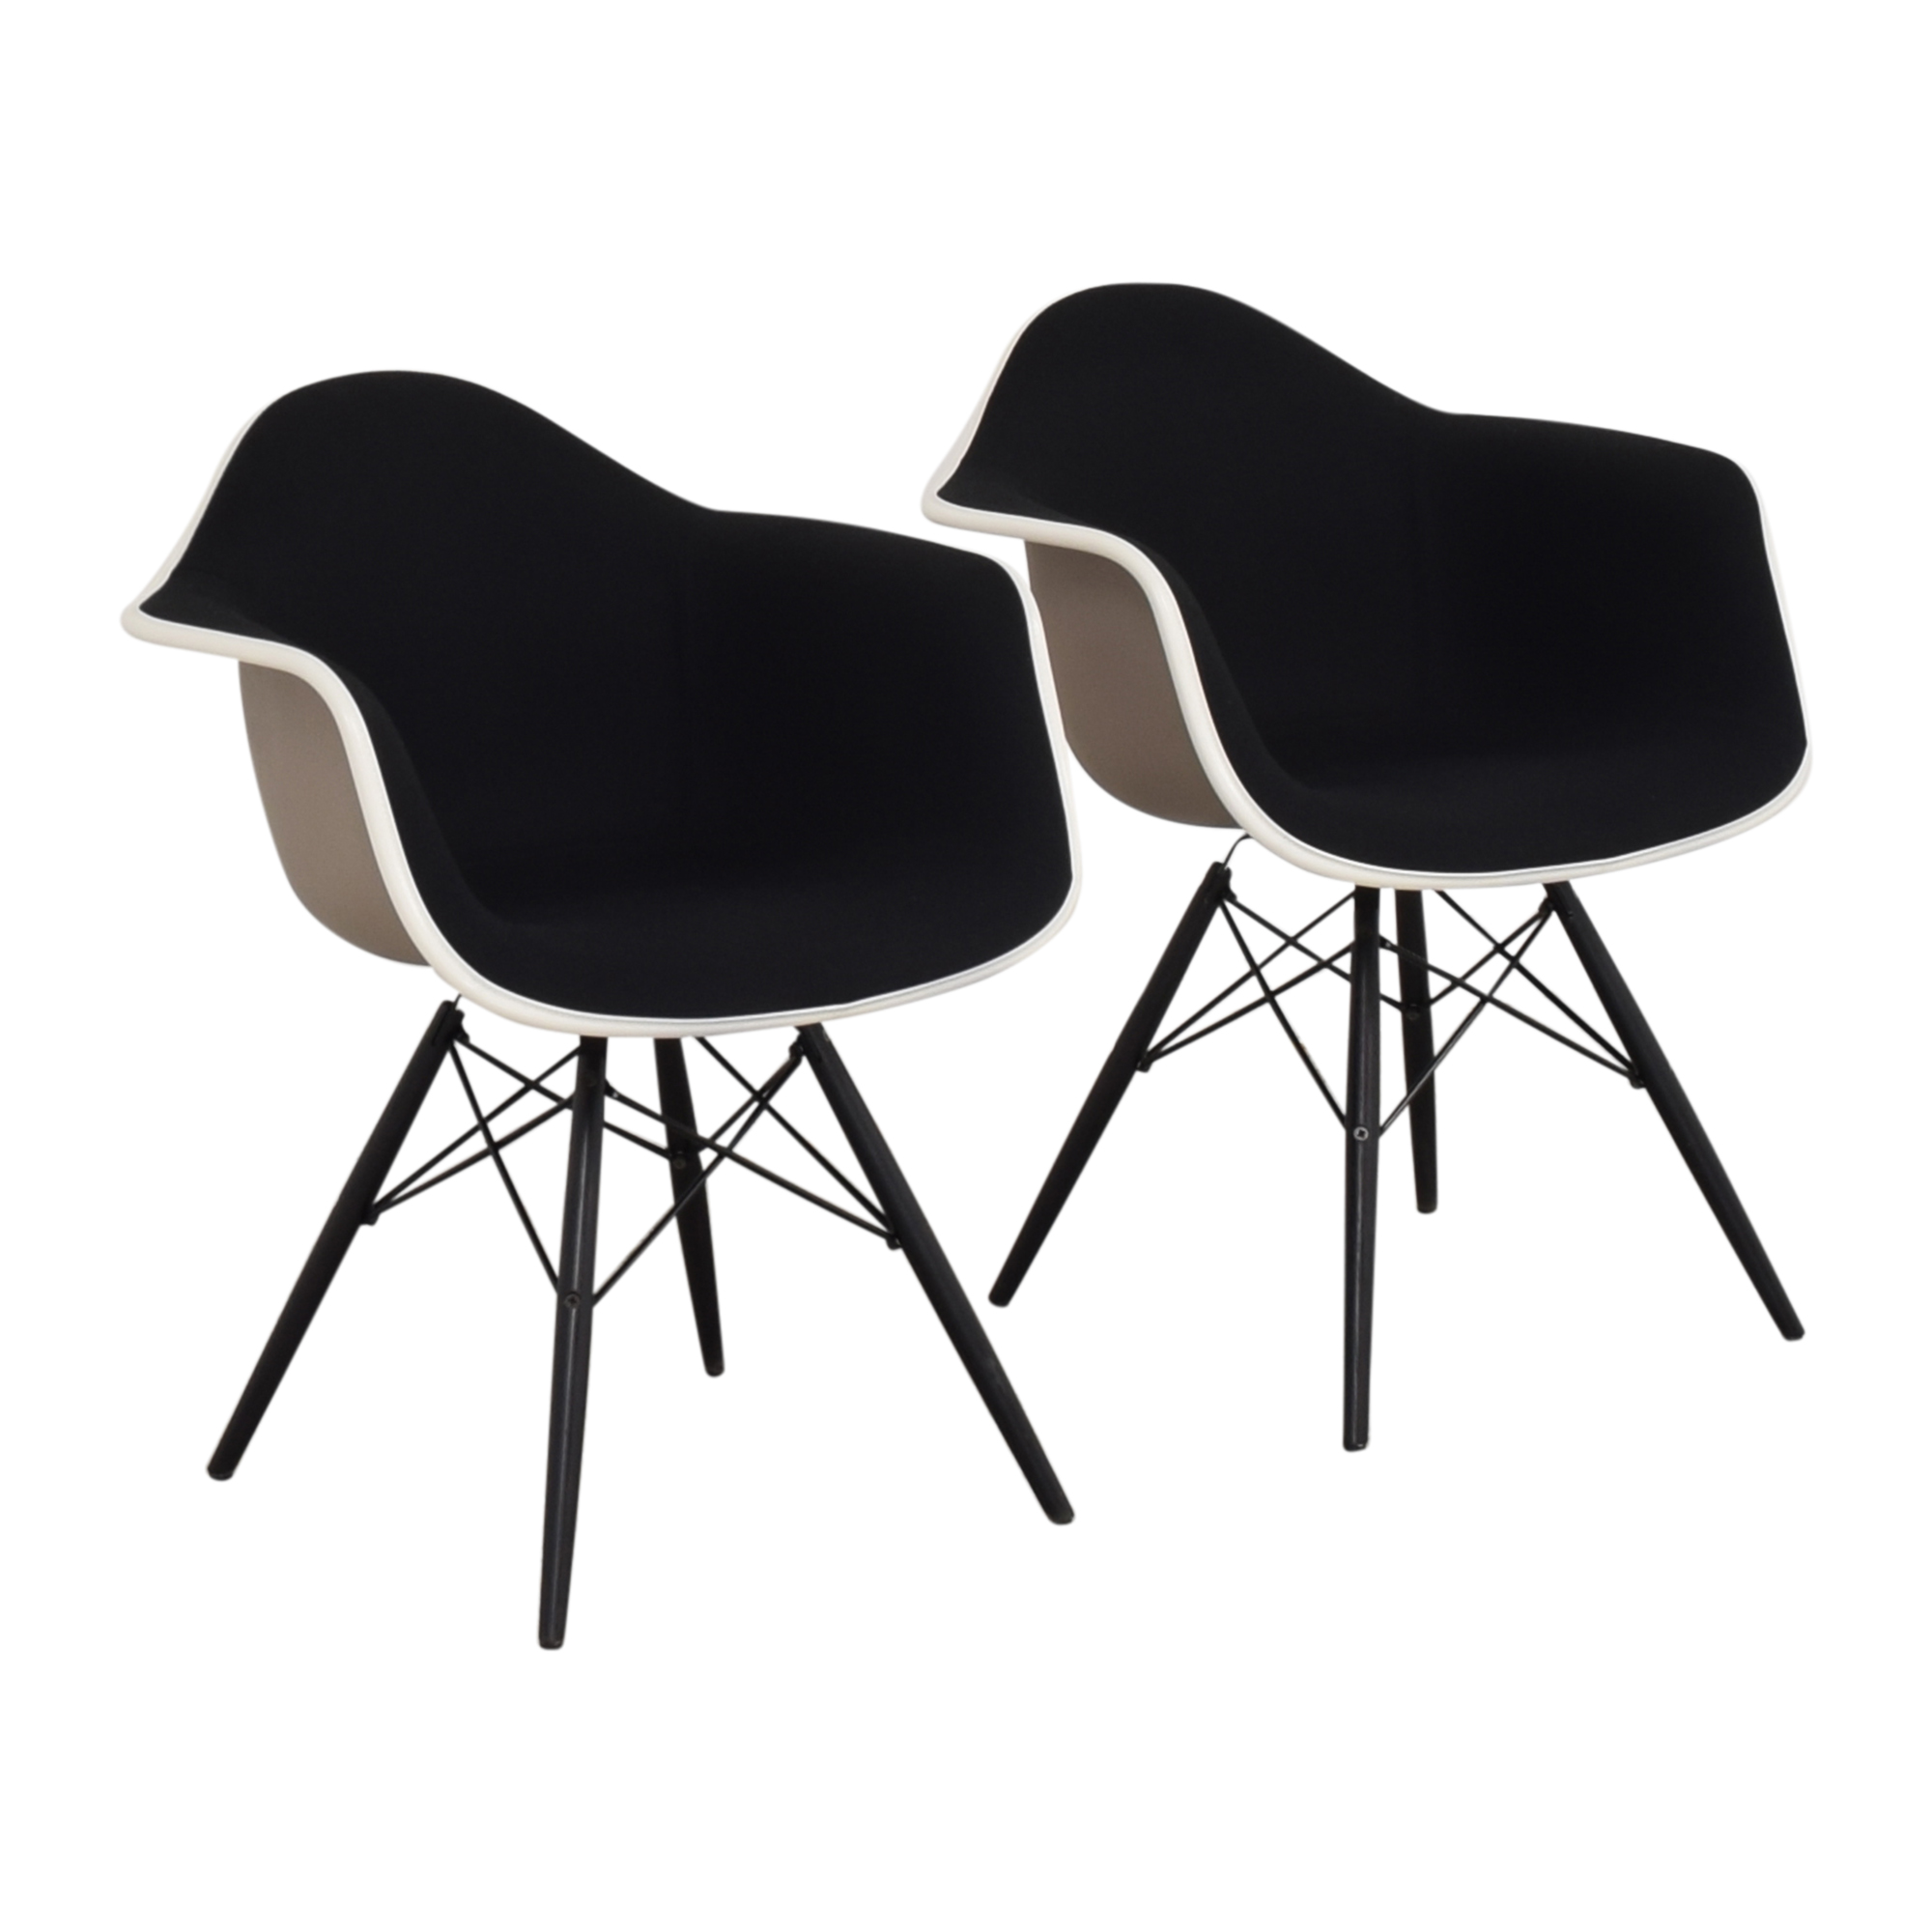 Herman Miller Herman Miller Eames Molded Arm Chairs black and white